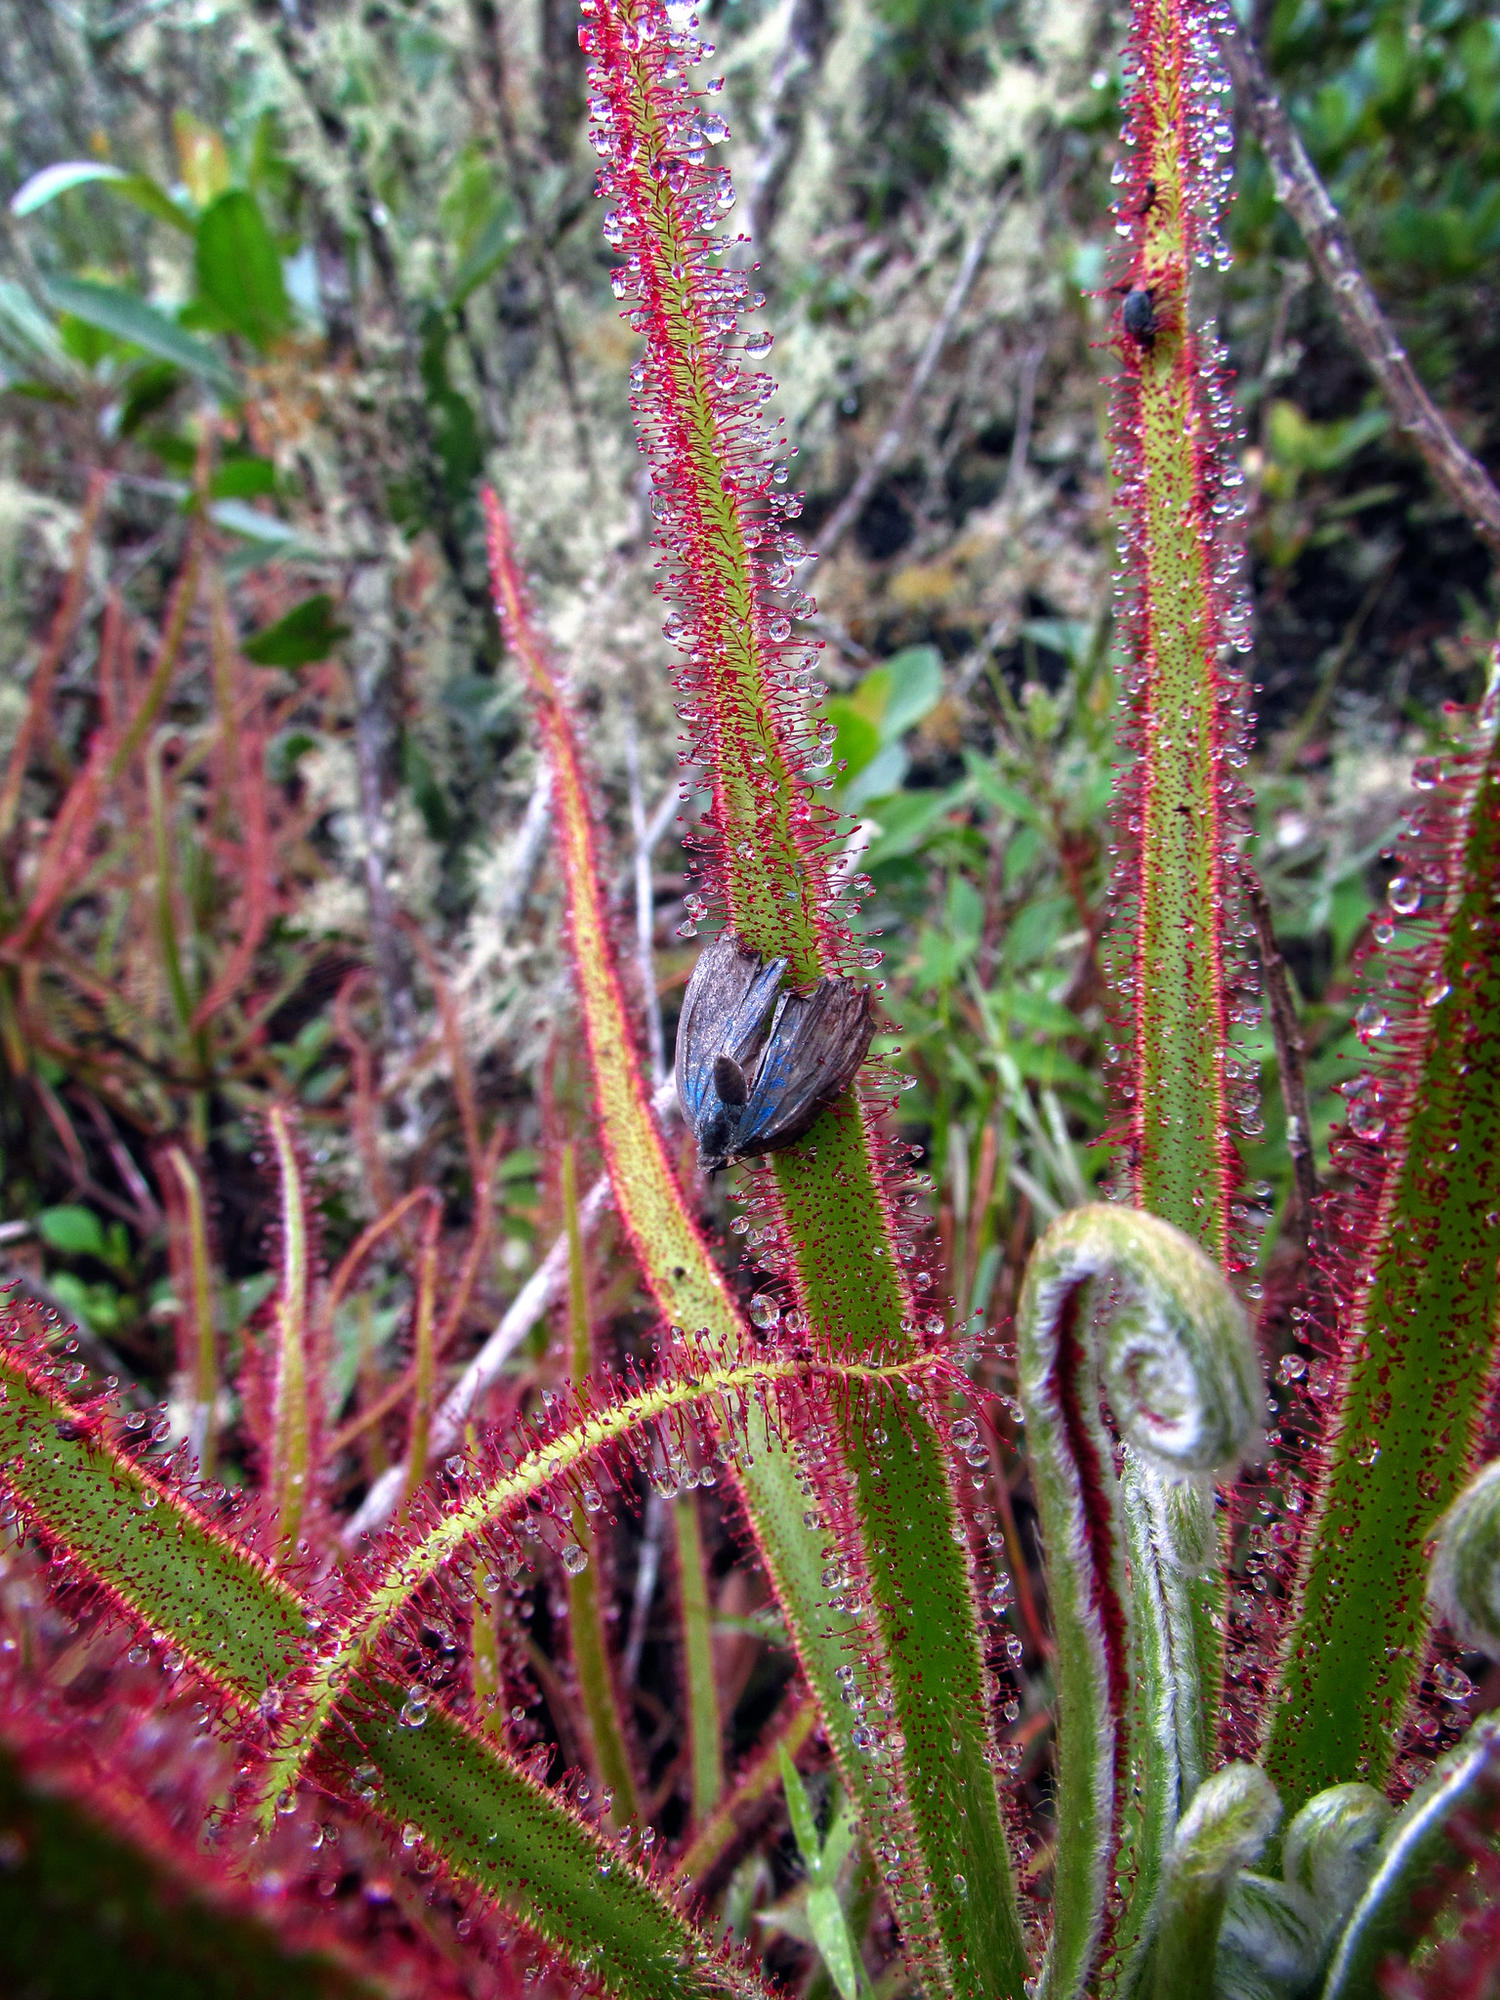 The giant sundew with prey, a small butterfly.